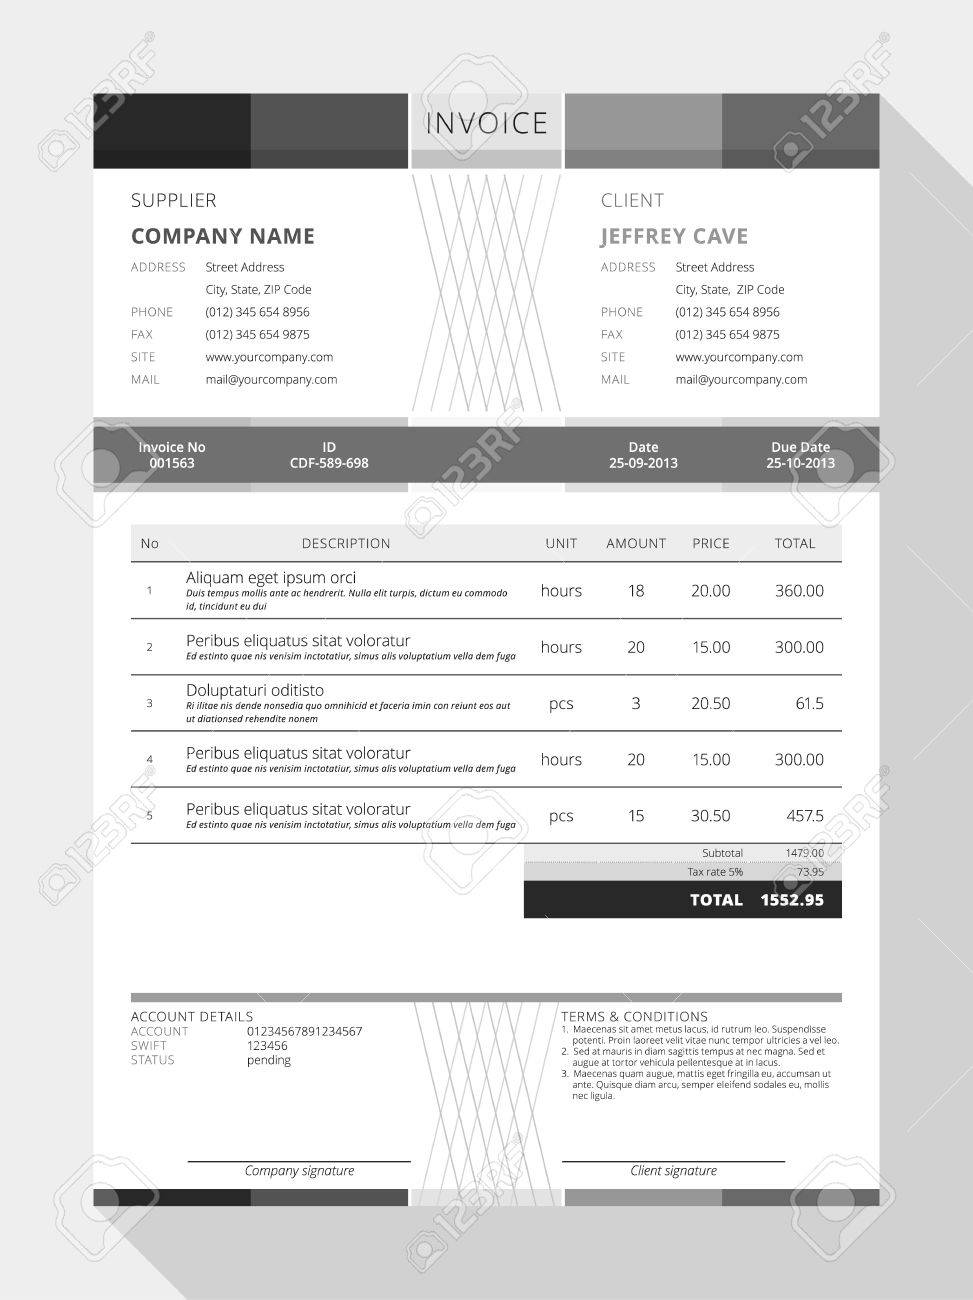 Angkajituus  Outstanding Design An Invoice  Professional Graphic Design Invoice  With Exciting Vector Customizable Invoice Form Template Design Vector   Design An Invoice With Attractive Gross Receipts Tax New Mexico Also Whatsapp Read Receipt In Addition Uscis Receipt Number Not Received And Daycare Receipt Template As Well As Usps Certified Return Receipt Additionally Store Receipt Template From Happytomco With Angkajituus  Exciting Design An Invoice  Professional Graphic Design Invoice  With Attractive Vector Customizable Invoice Form Template Design Vector   Design An Invoice And Outstanding Gross Receipts Tax New Mexico Also Whatsapp Read Receipt In Addition Uscis Receipt Number Not Received From Happytomco